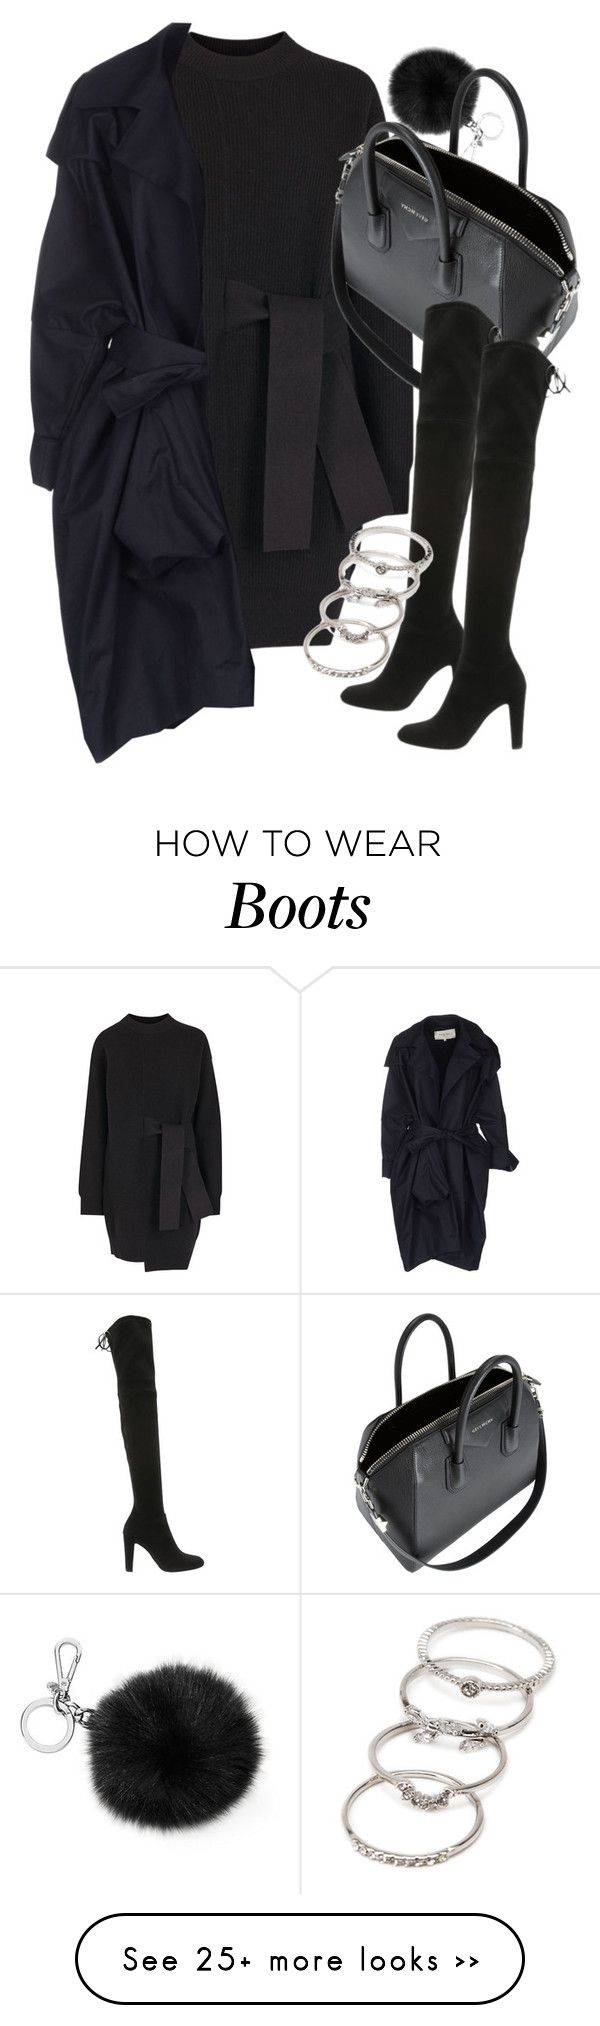 """""""Untitled #18943"""" by florencia95 on Polyvore featuring Proenza Schouler, Rue Du Mail, Michael Kors, Givenchy, Stuart Weitzman and Forever 21"""